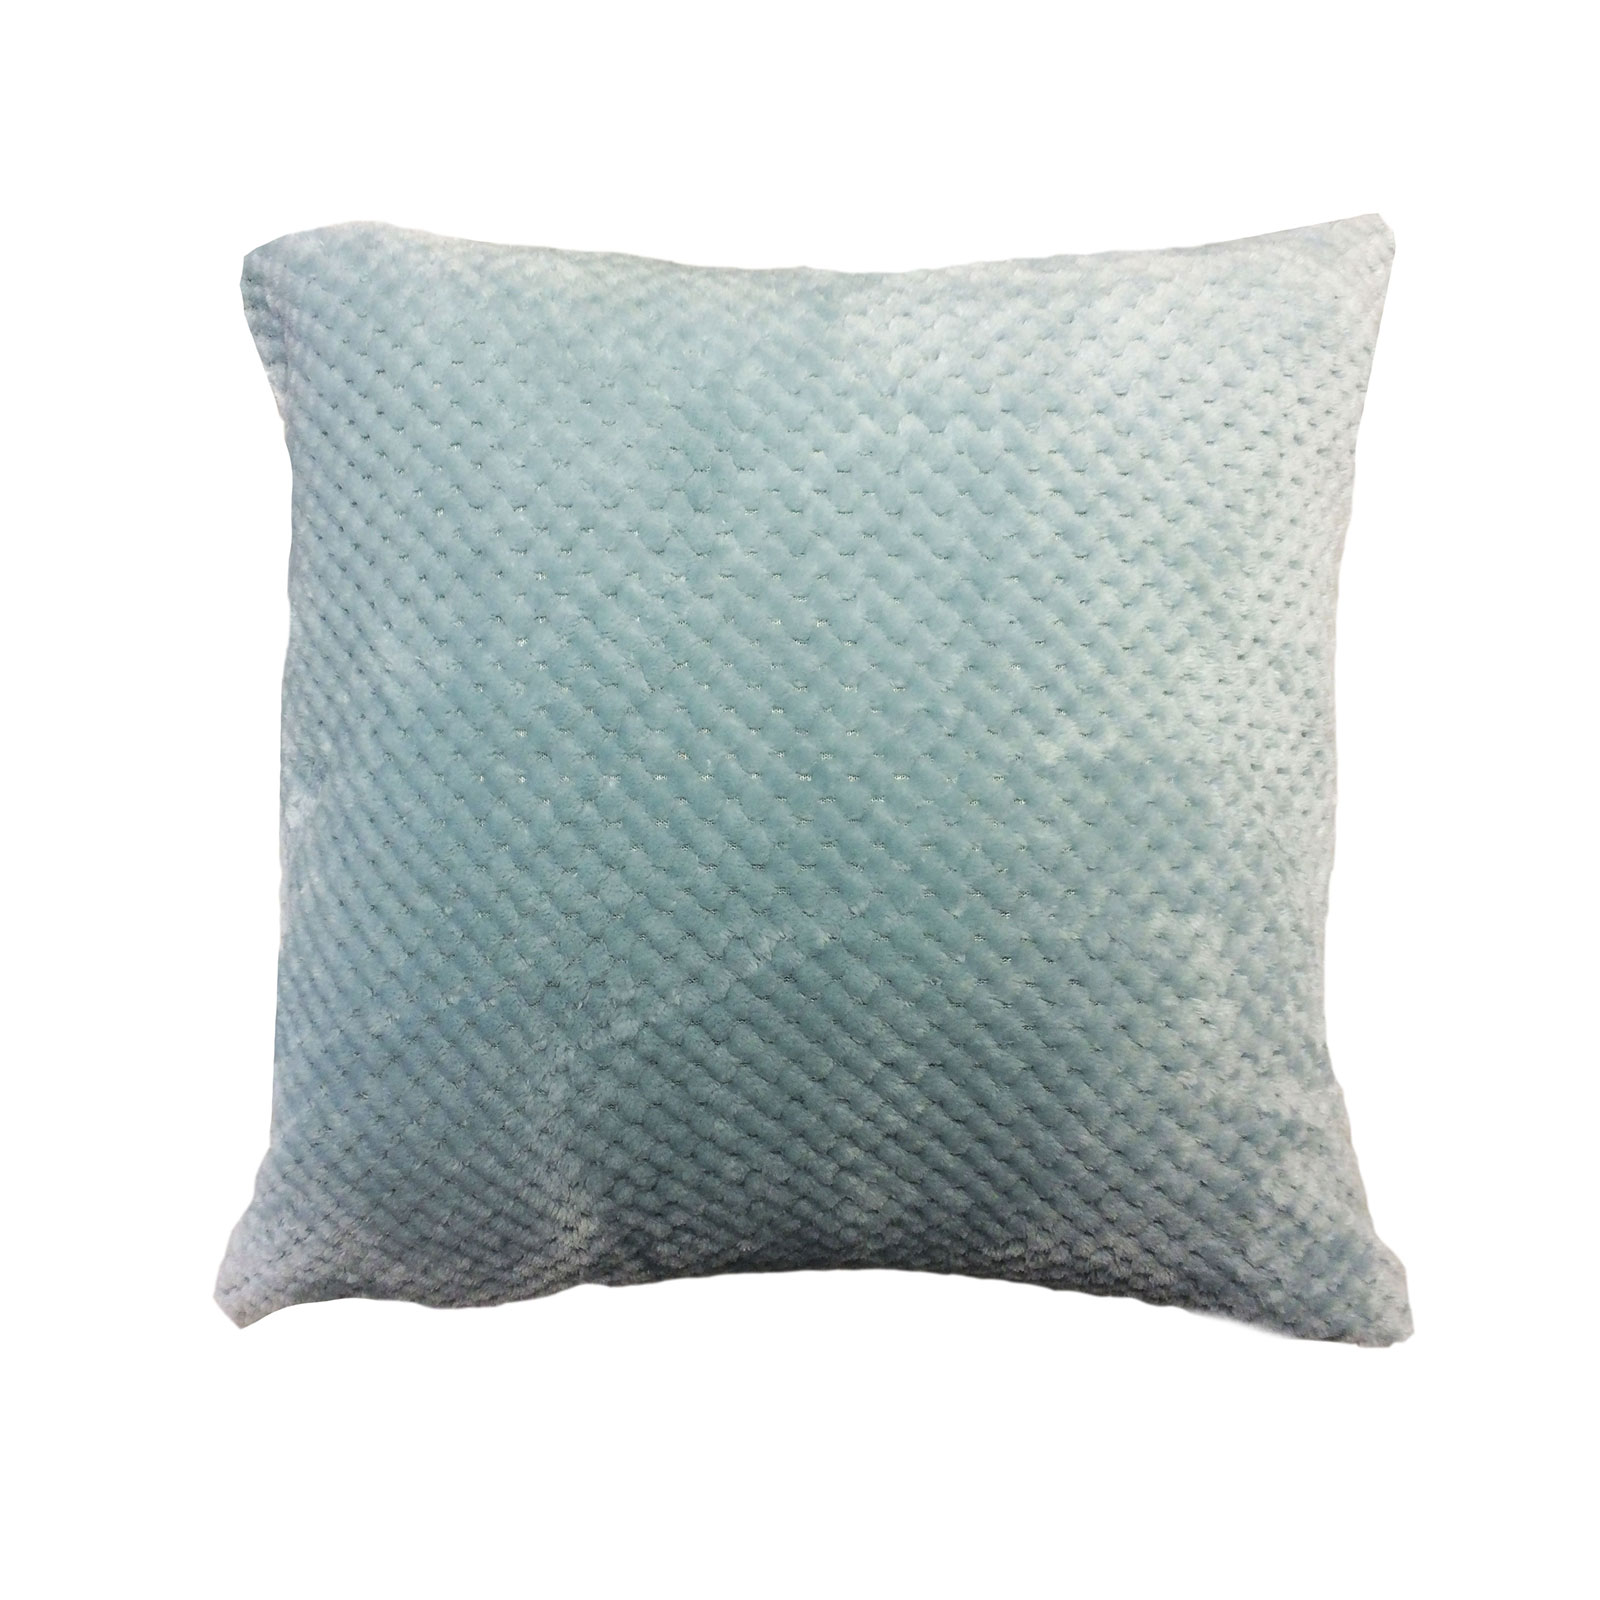 Pillow Covers Throw Pillows: Place throw pillows on a bare sofa to spruce up the furniture's design. flip13bubble.tk - Your Online Decorative Accessories Store! Get 5% in rewards with Club O!